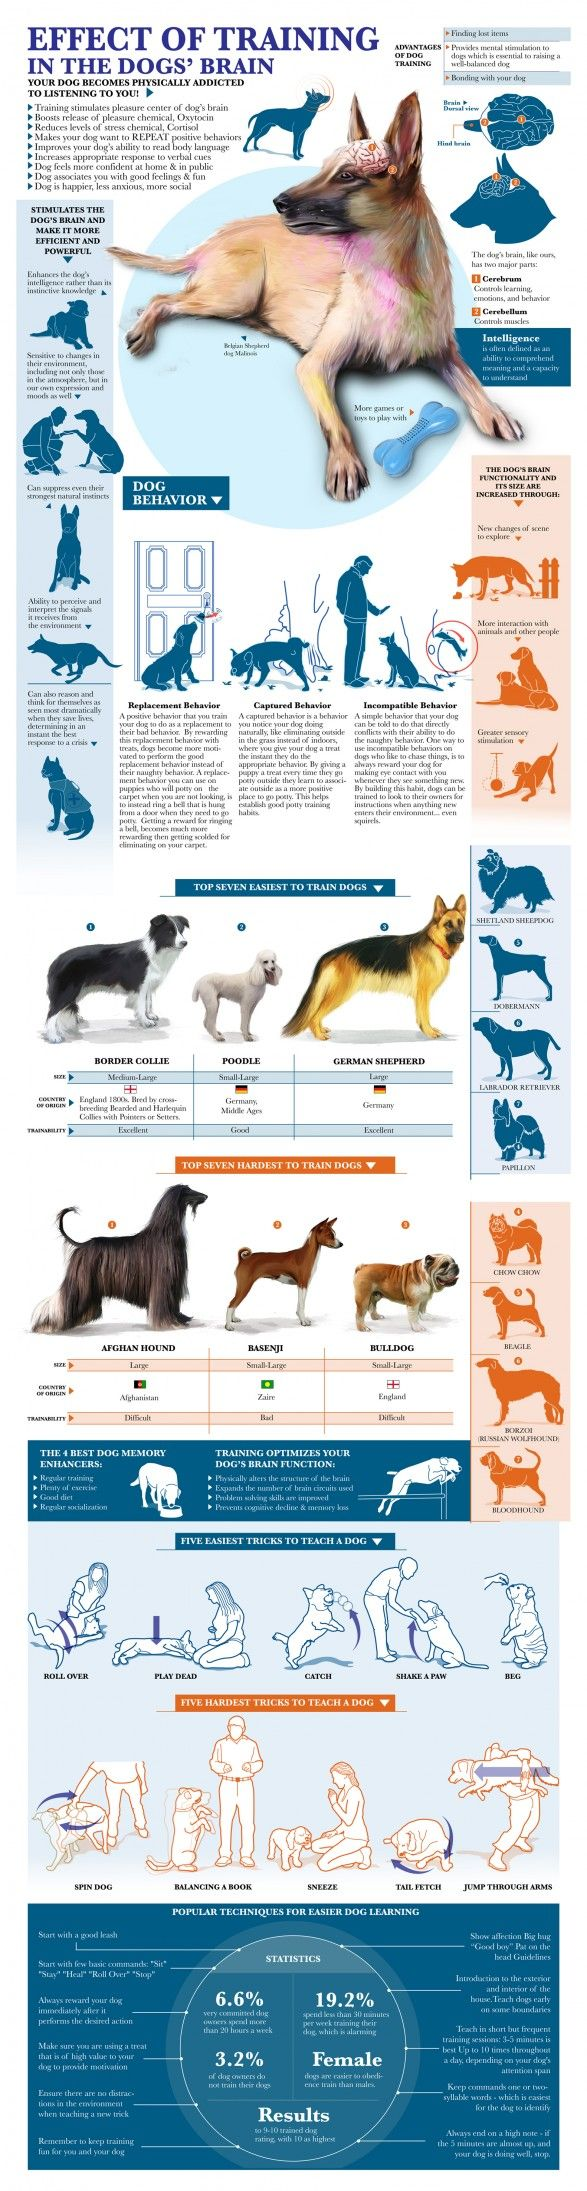 Effect Of Training In The Dog Brain. I see my Annie is #2 on the Hardest to Train dogs! http://www.turmericfordogs.com/blog